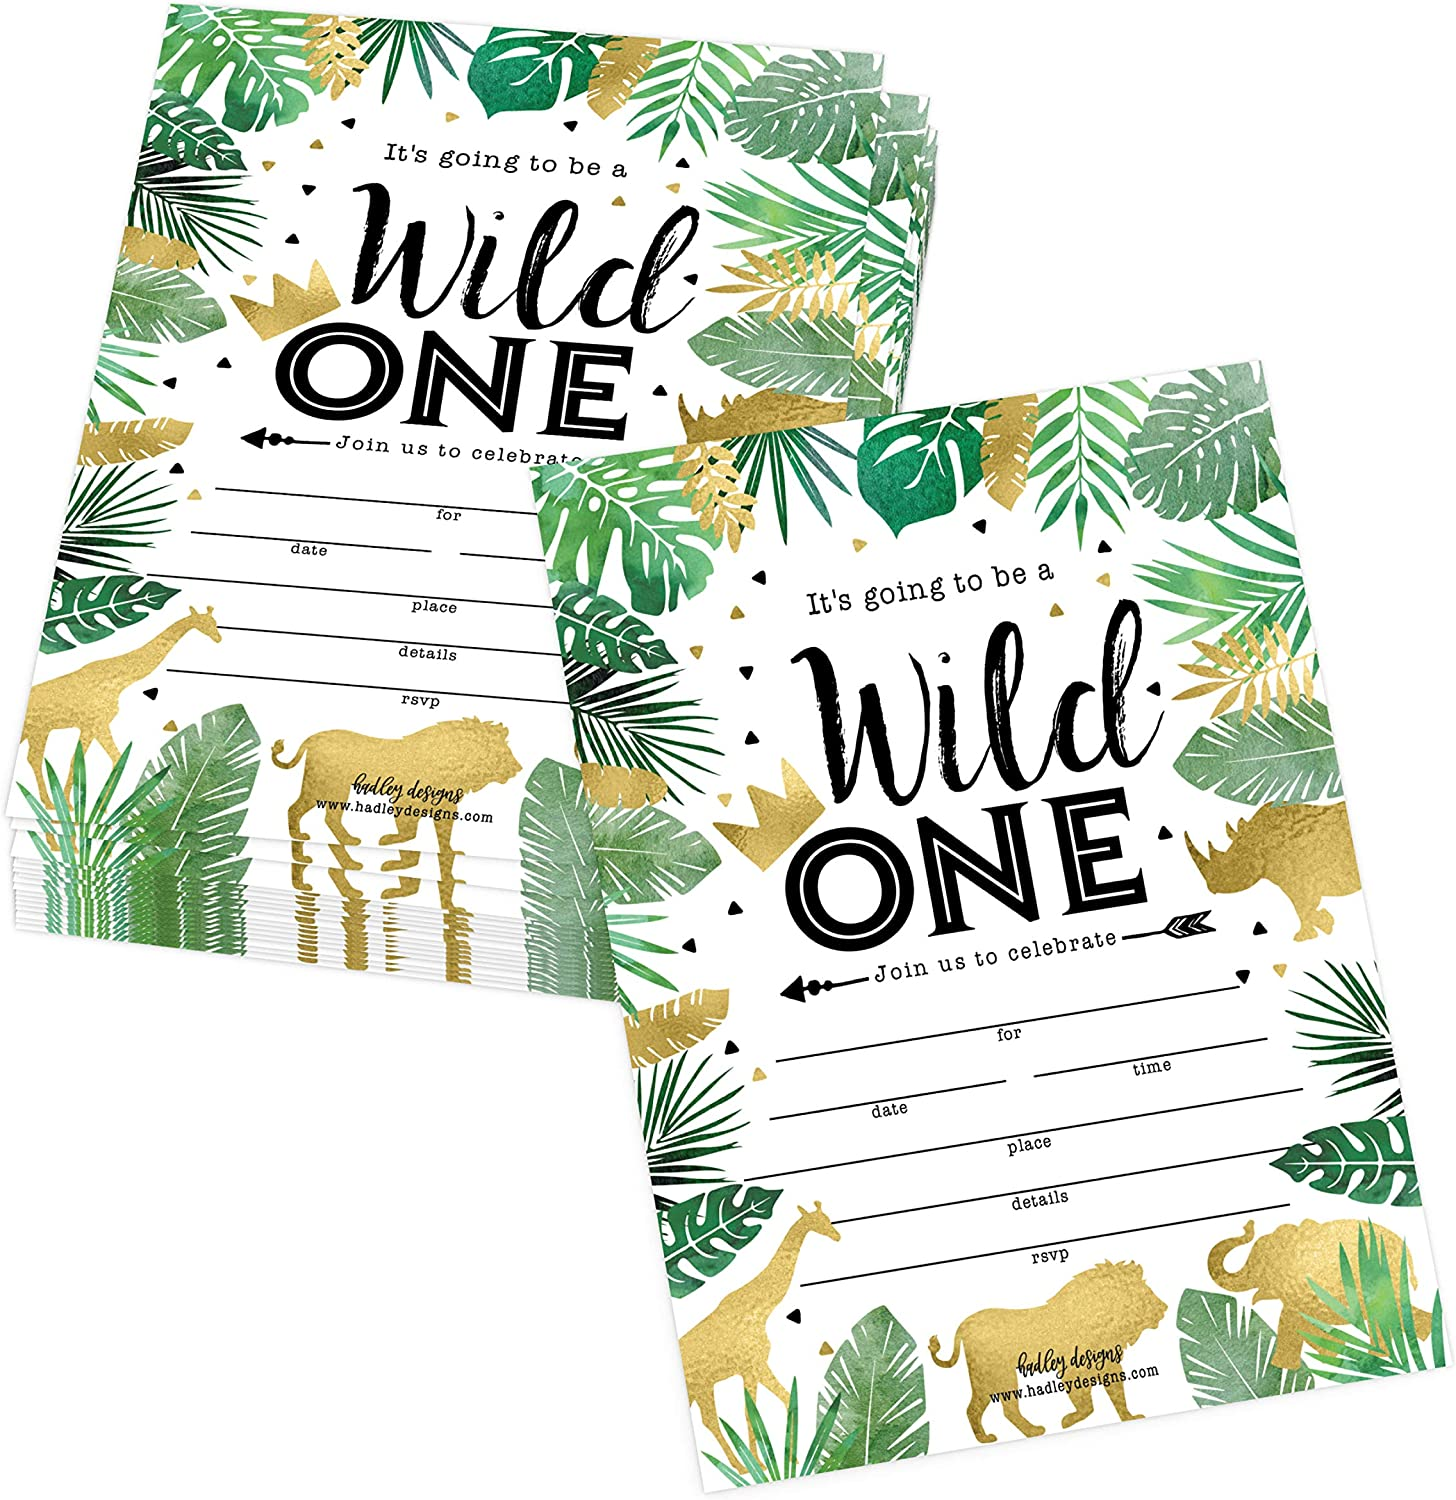 25 jungle safari zoo elephant animals themed kids party invitation crown lion tropical invite forest giraffe wild one bday first year old birthday